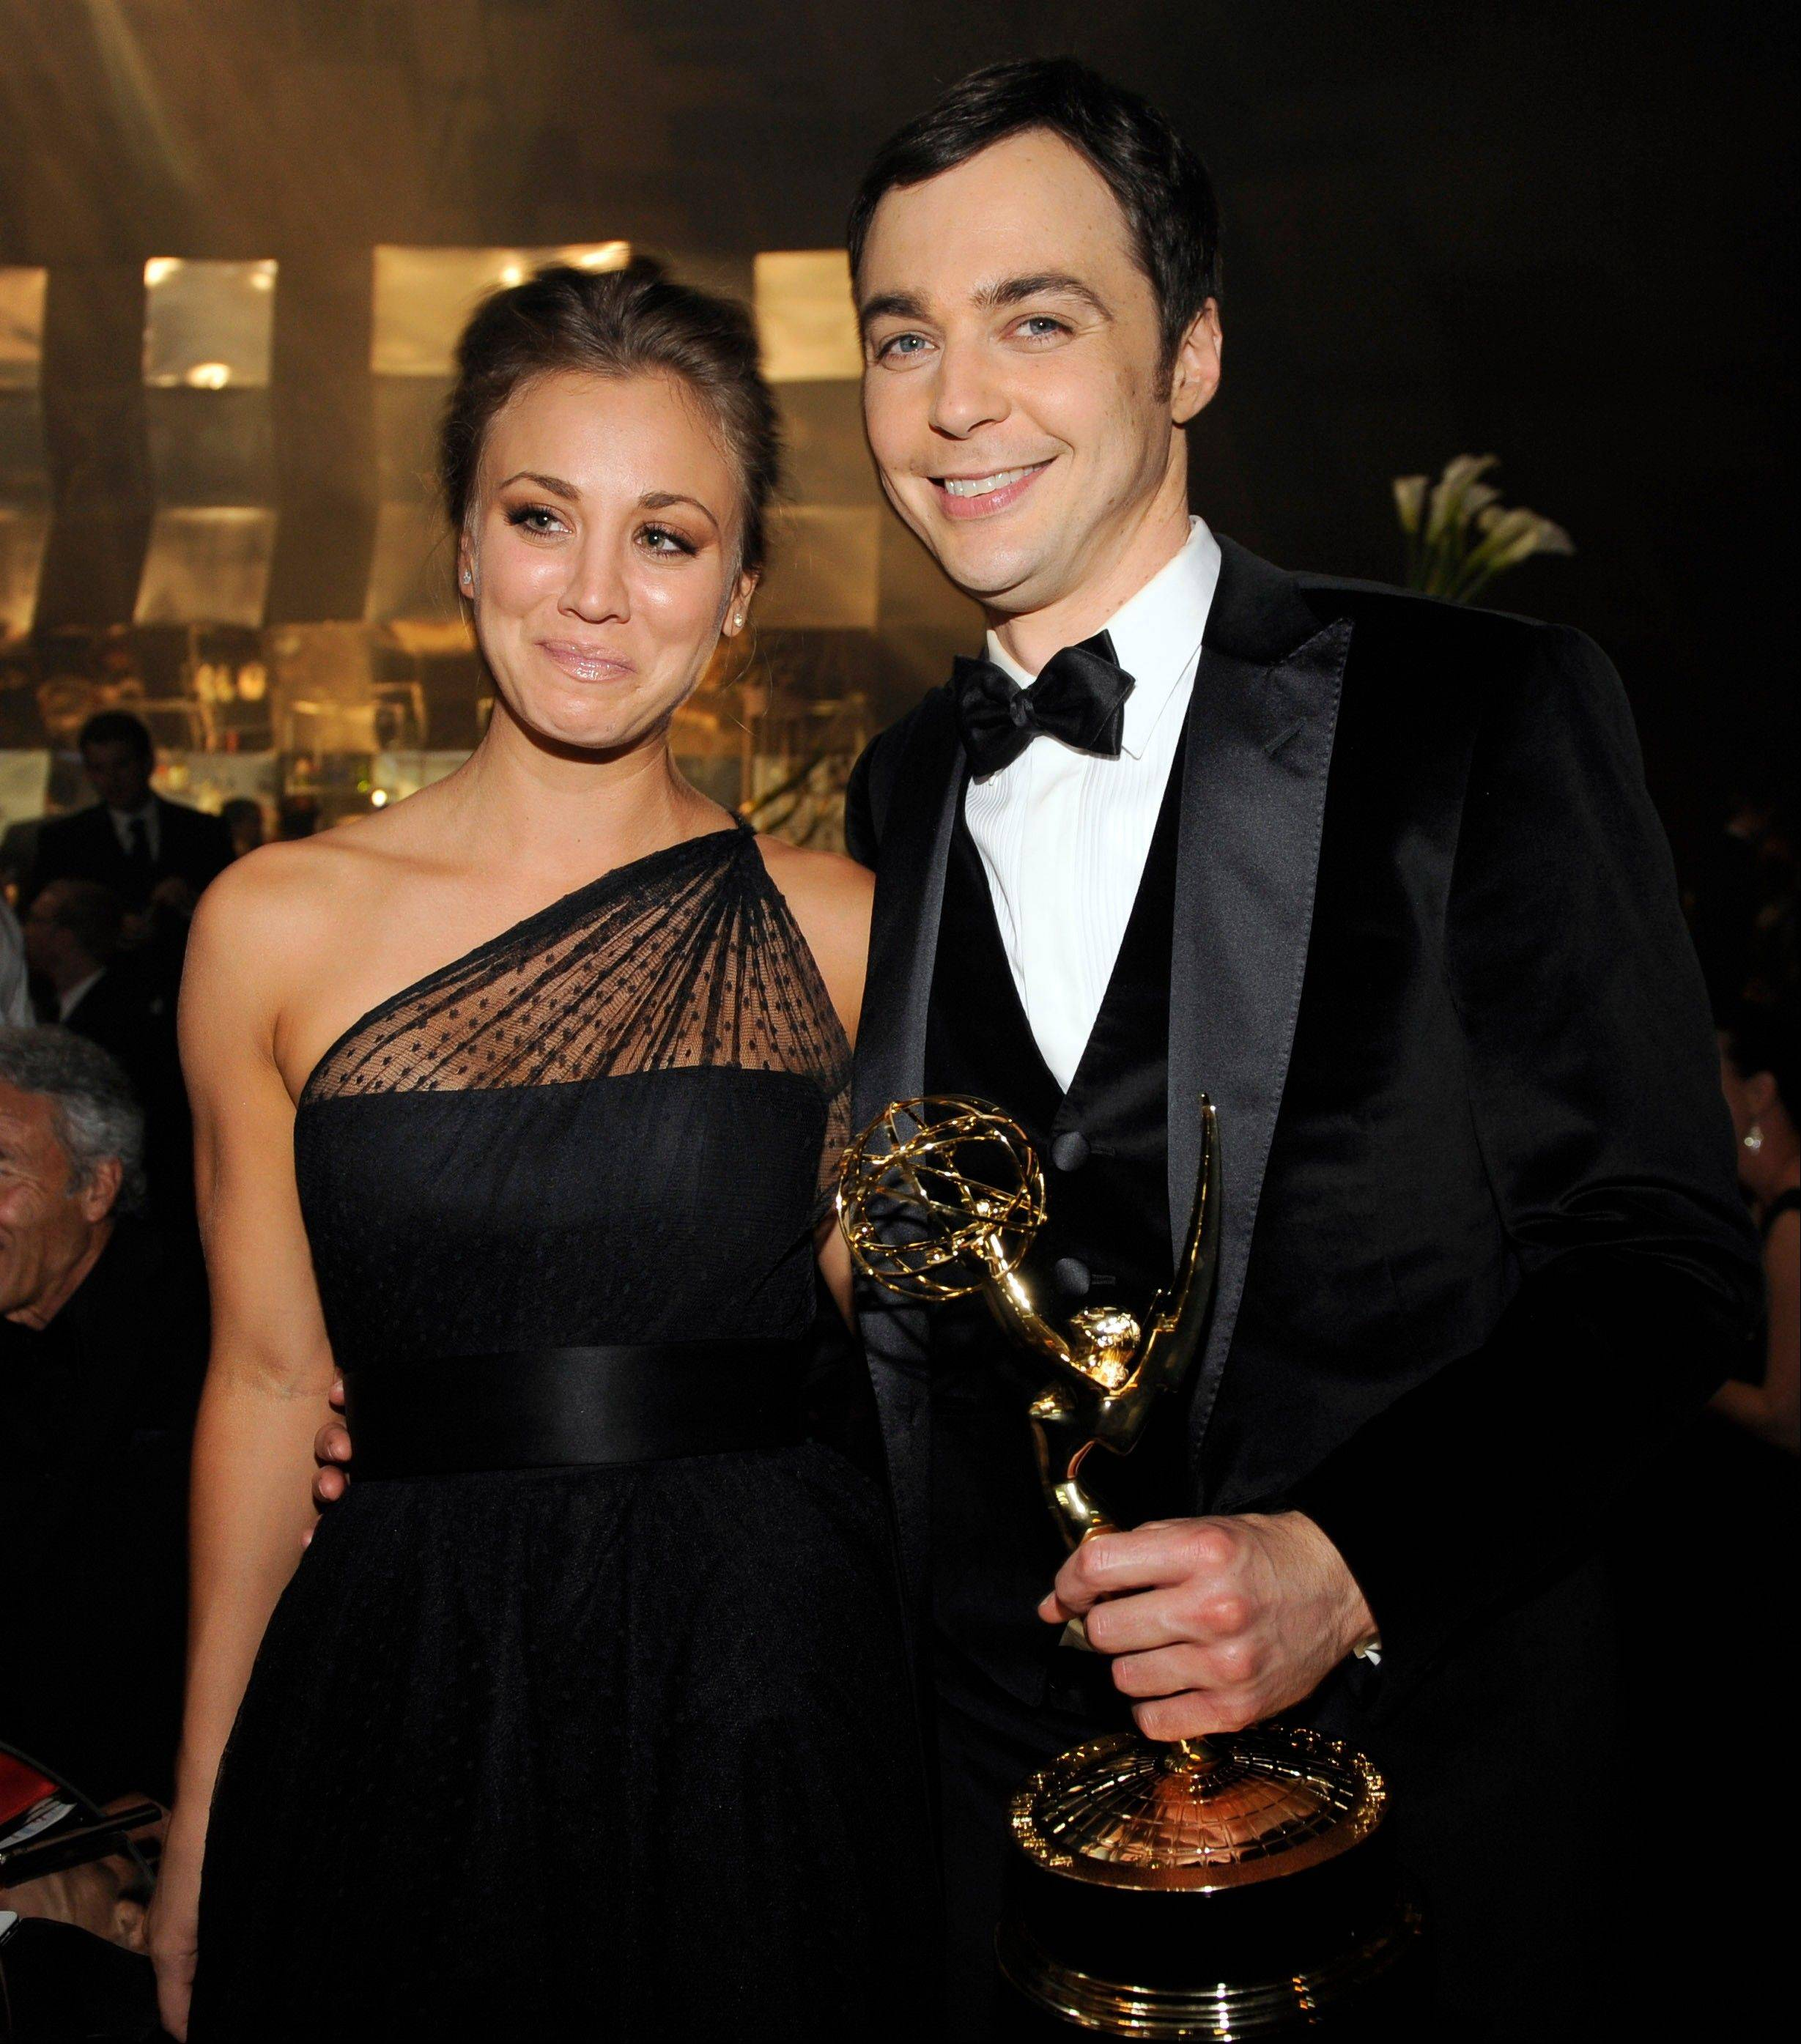 """The Big Bang Theory"" actor Jim Parsons winner of the Emmy for best actor in a comedy series is joined by castmate Kaley Cucco at the 63rd Primetime Emmy Awards Governors Ball Sunday."